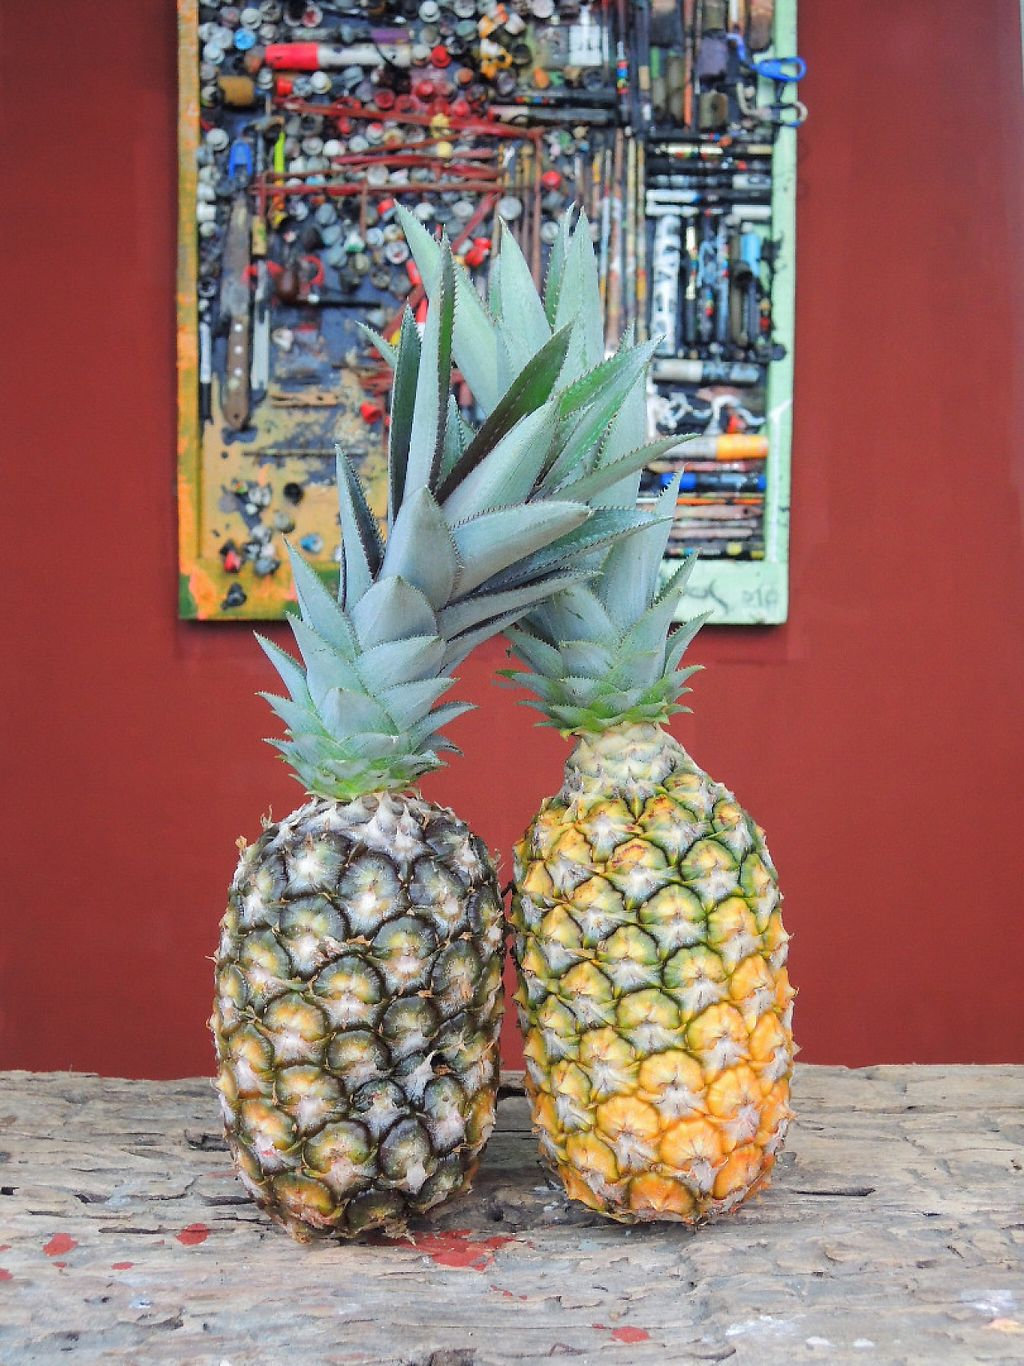 """Photo of Cafe Bizarro  by <a href=""""/members/profile/ClaudiaMorango"""">ClaudiaMorango</a> <br/>Fully local and organic pineapples are used in the juice cleanse menu <br/> December 31, 2016  - <a href='/contact/abuse/image/84782/206563'>Report</a>"""